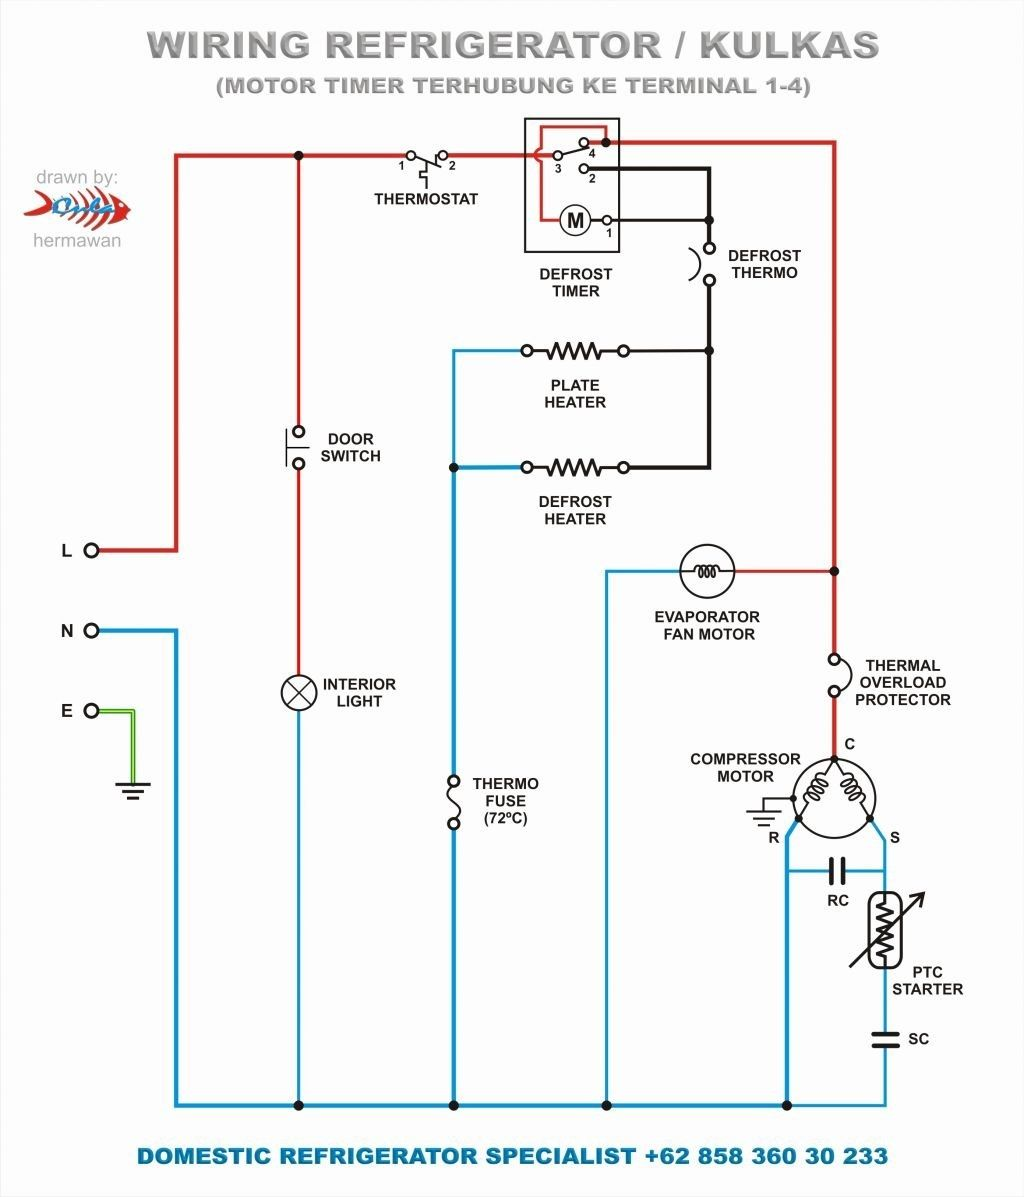 true freezer compressor wiring wiring diagram autovehicle refrigeration compressor wiring diagram freezer wiring diagram wiring diagram [ 1024 x 1197 Pixel ]